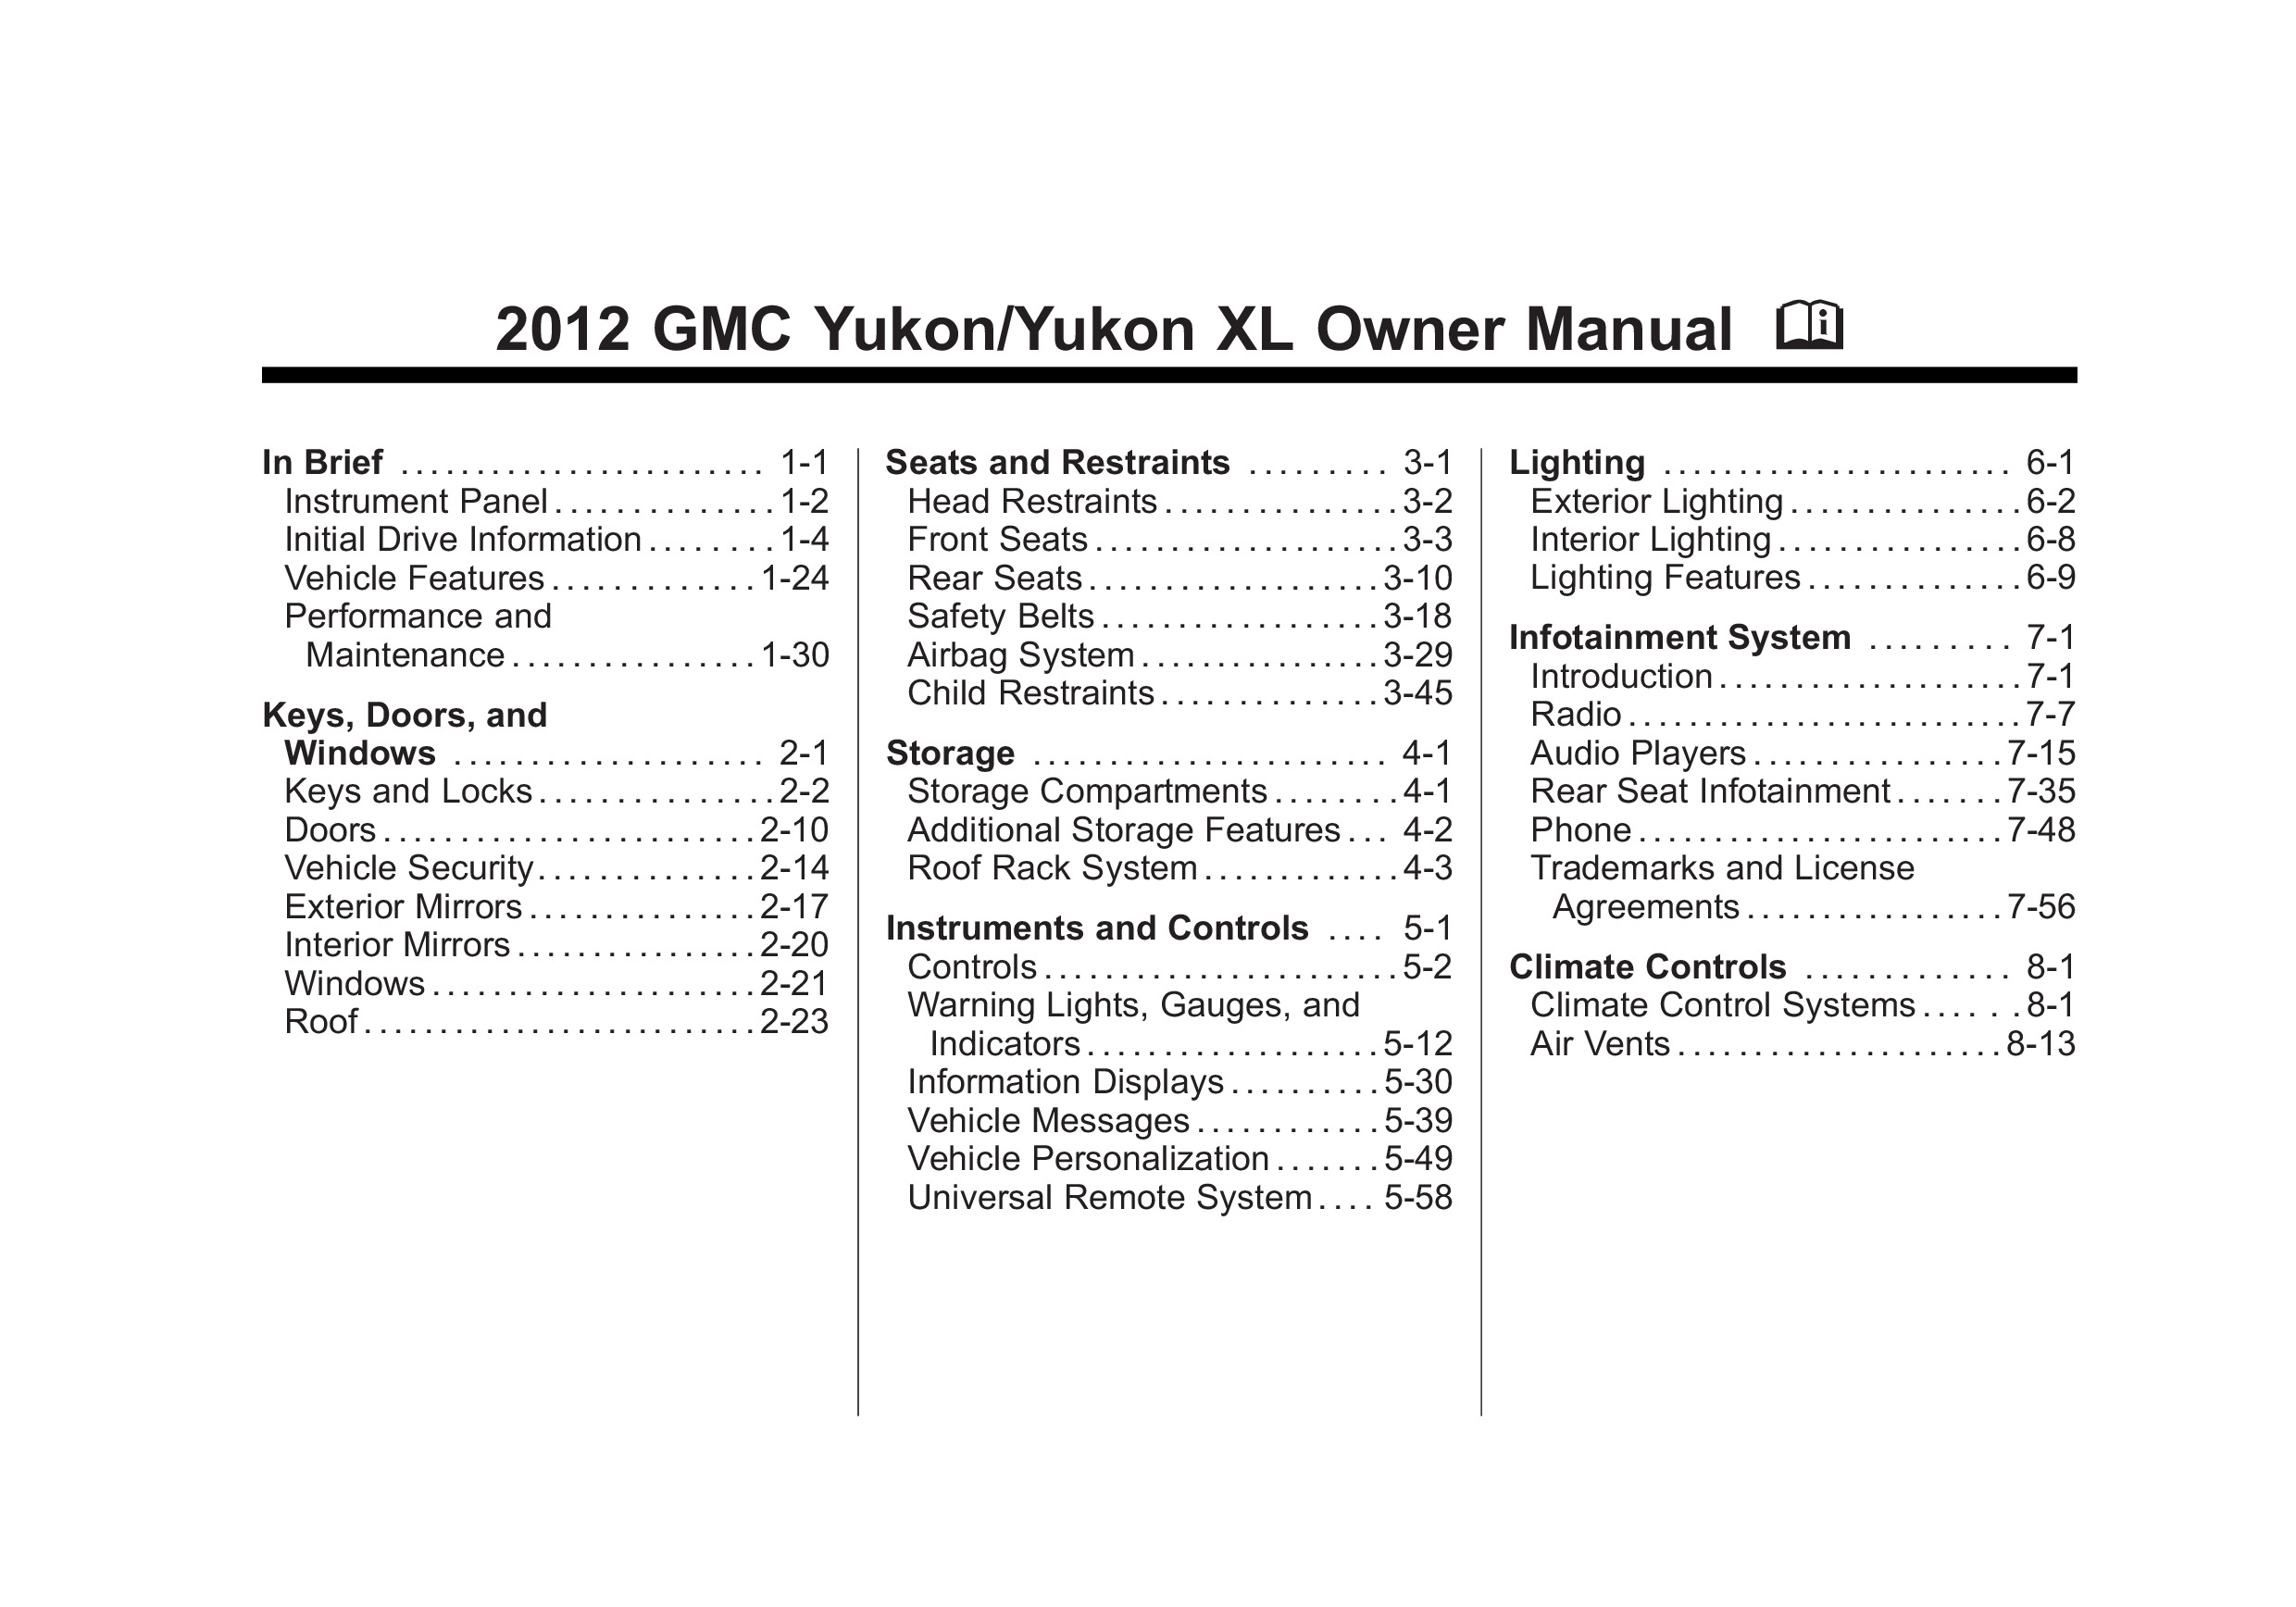 2012 GMC Yukon owners manual